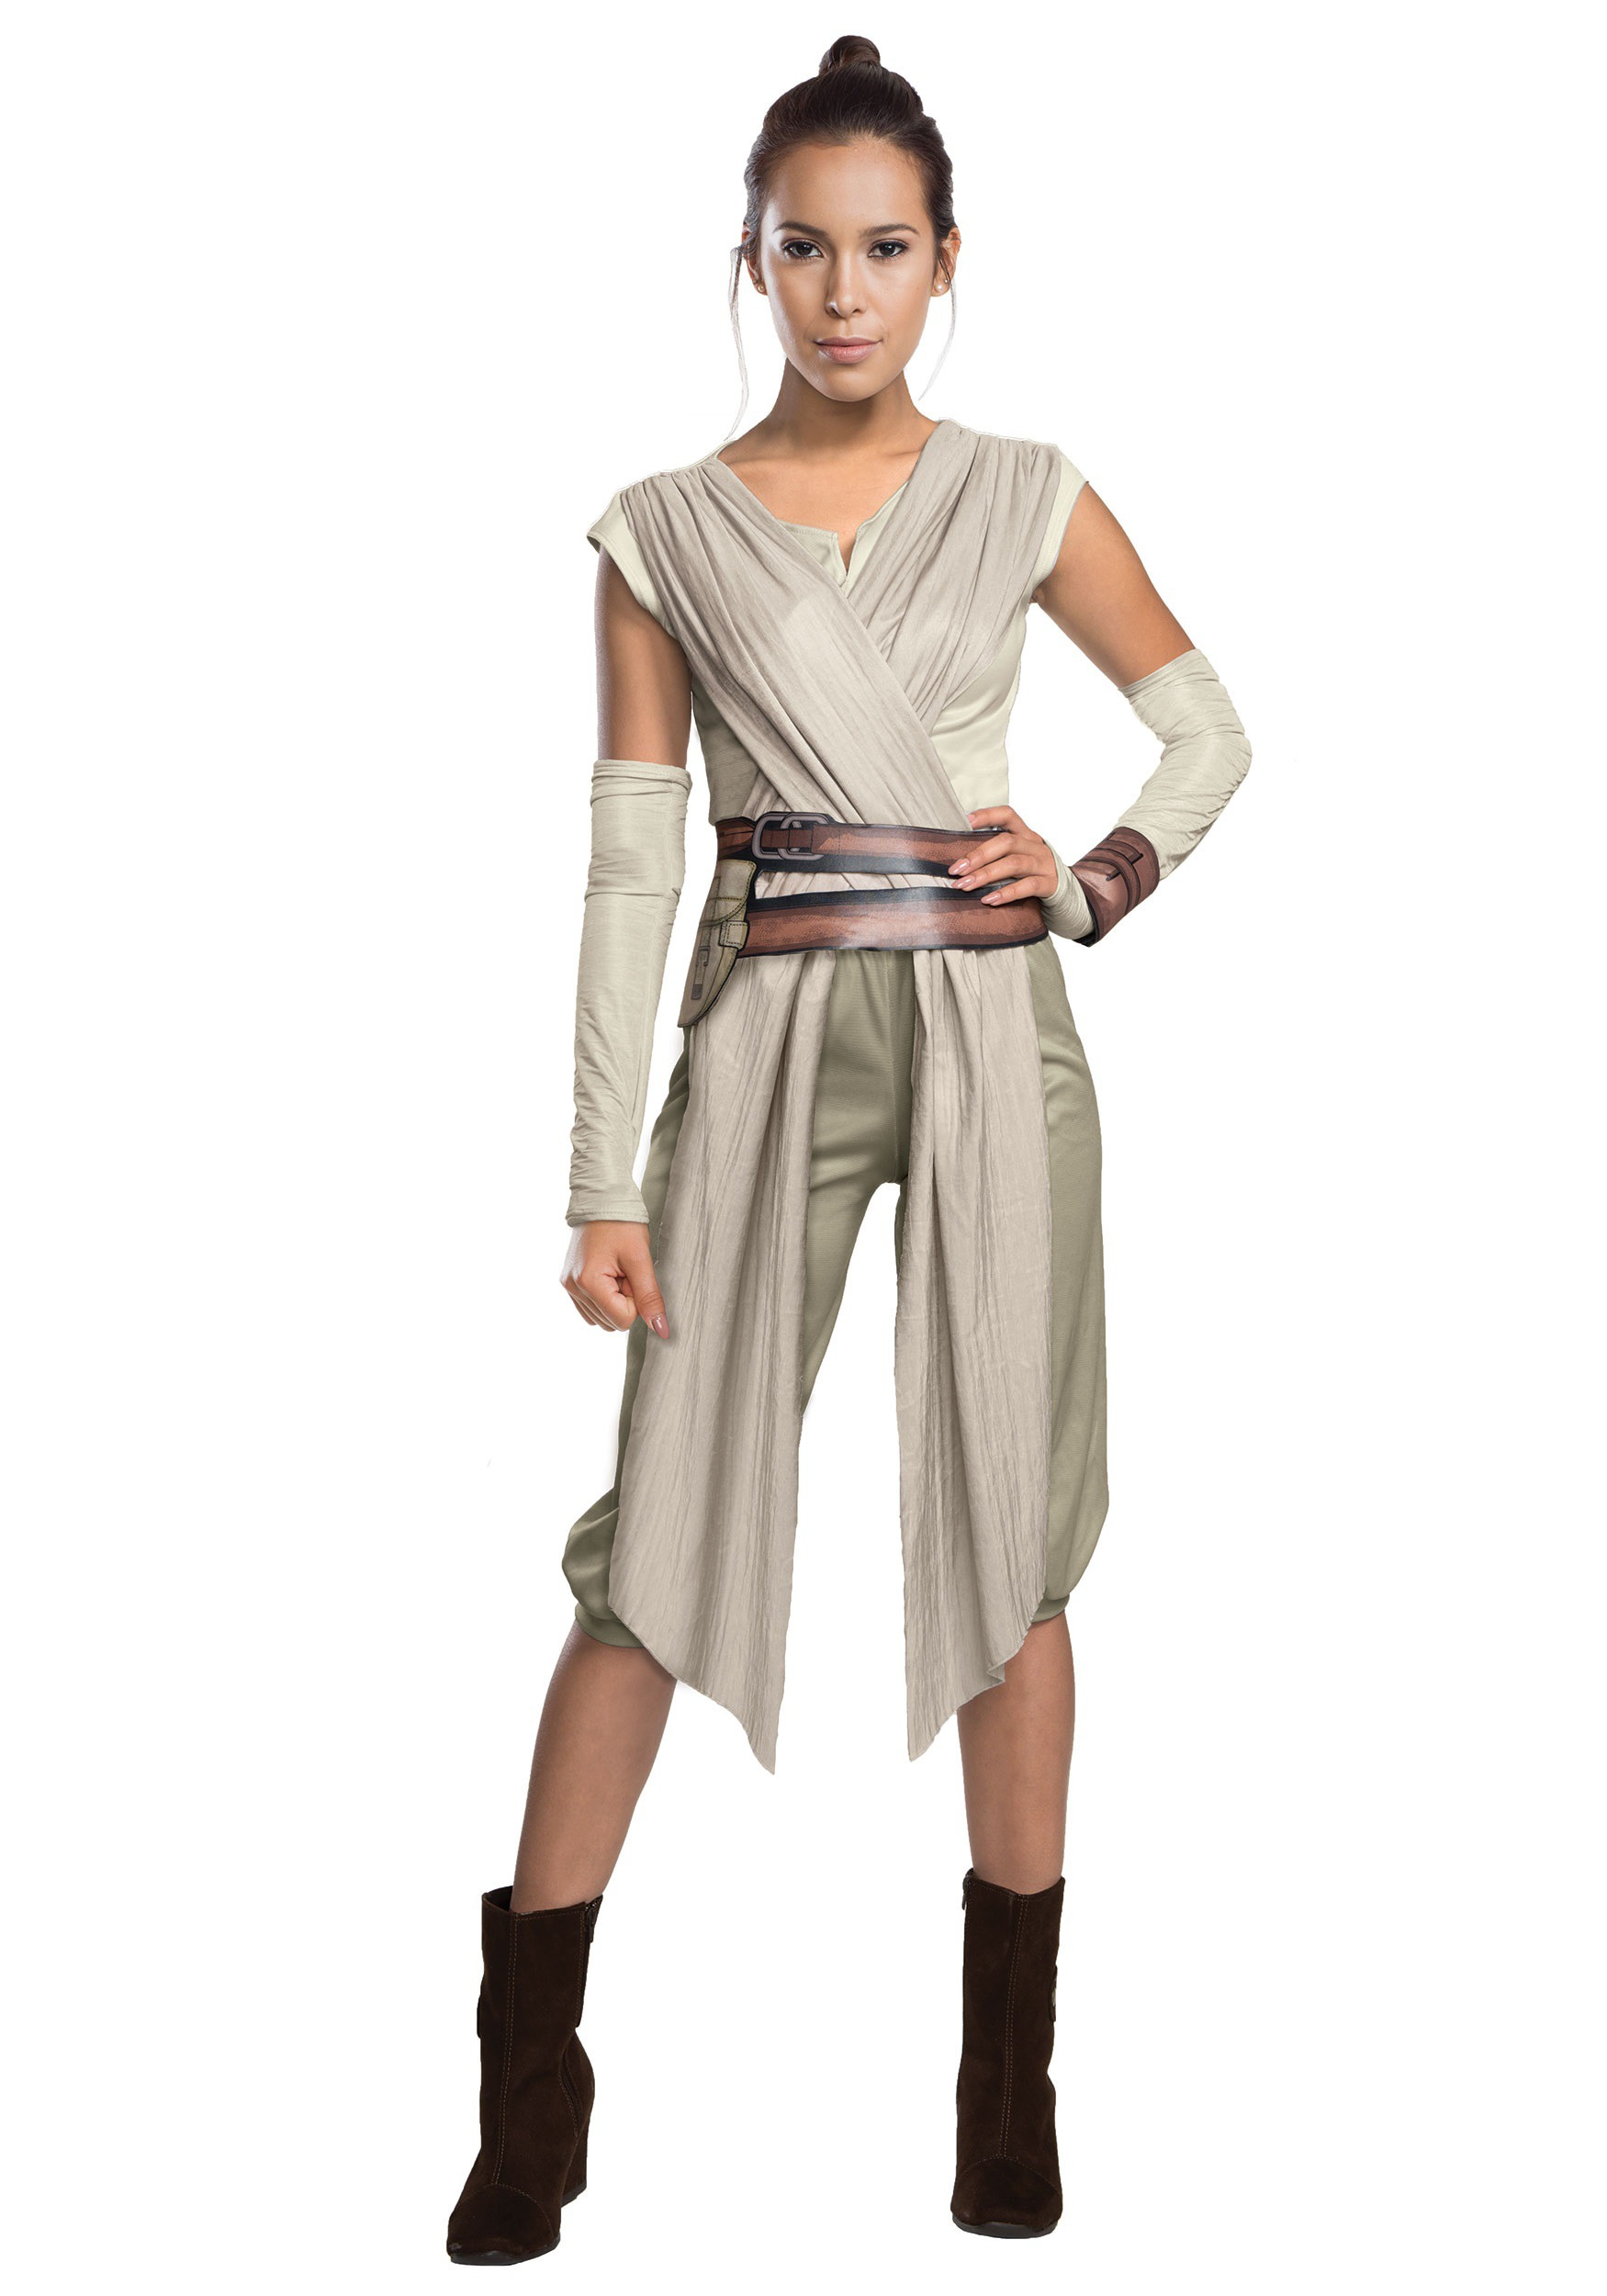 Adult deluxe star wars the force awakens rey costume adult deluxe star wars ep 7 rey costume solutioingenieria Choice Image